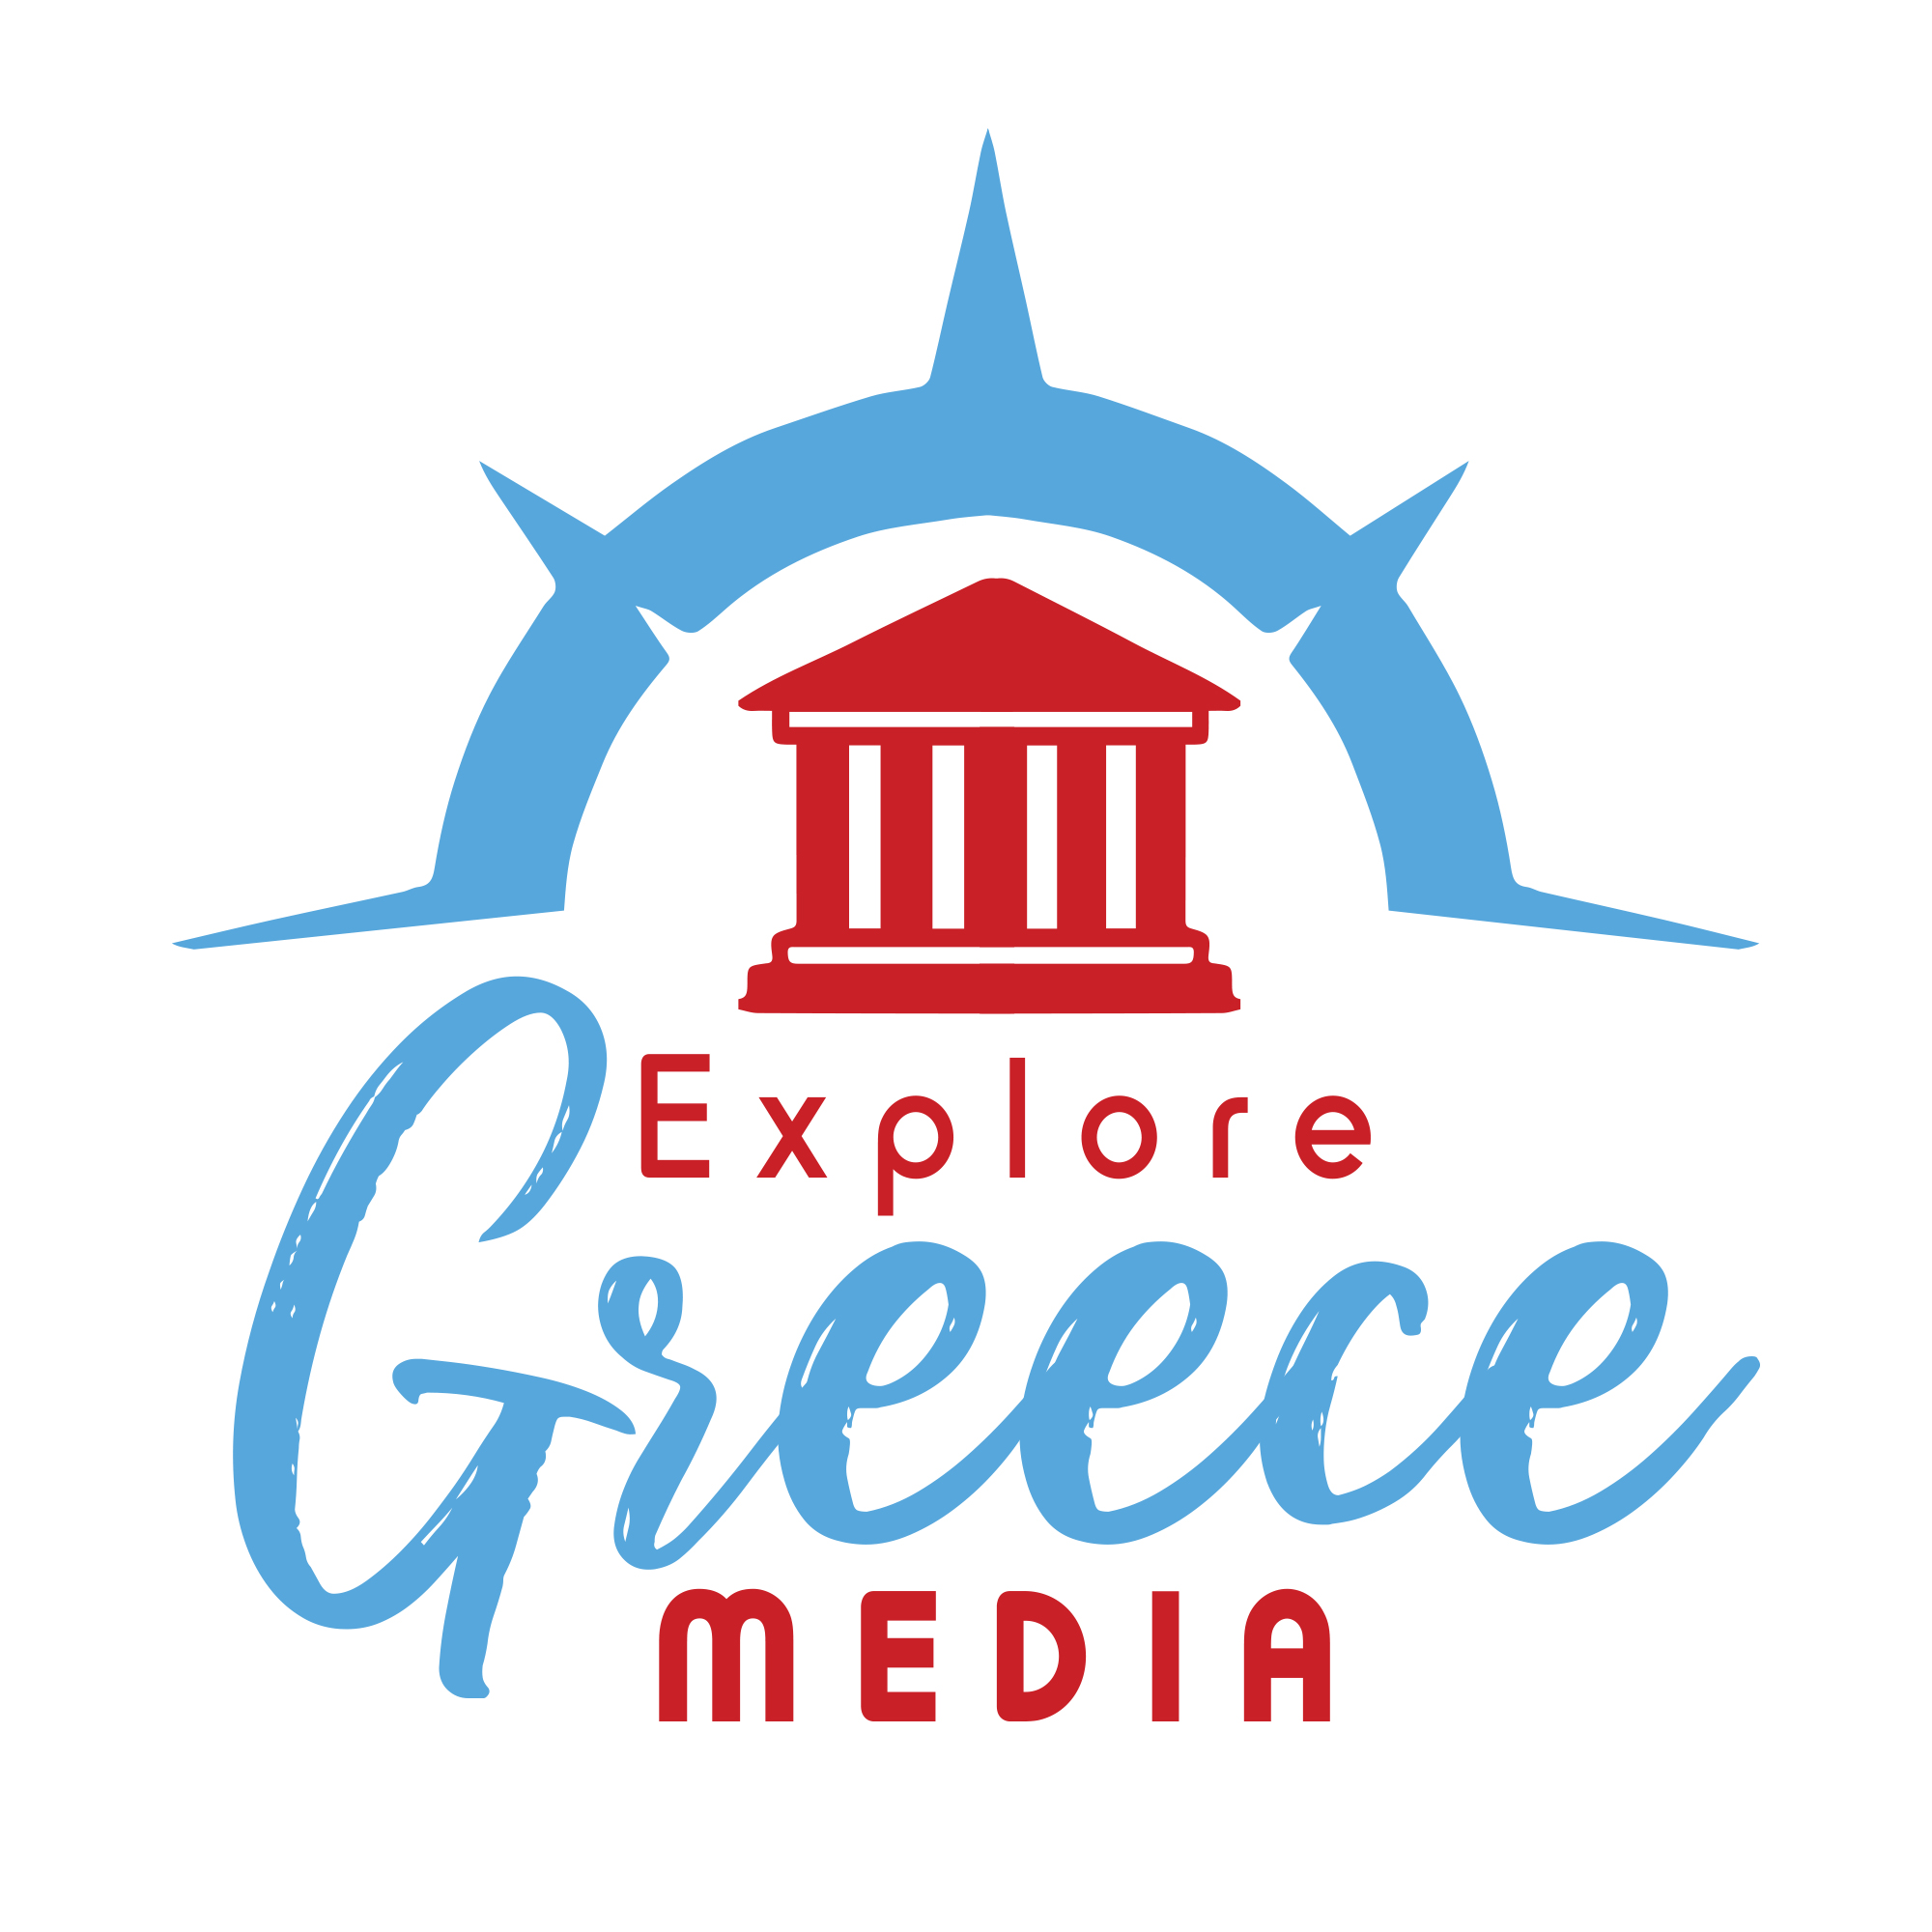 Explore Greece media